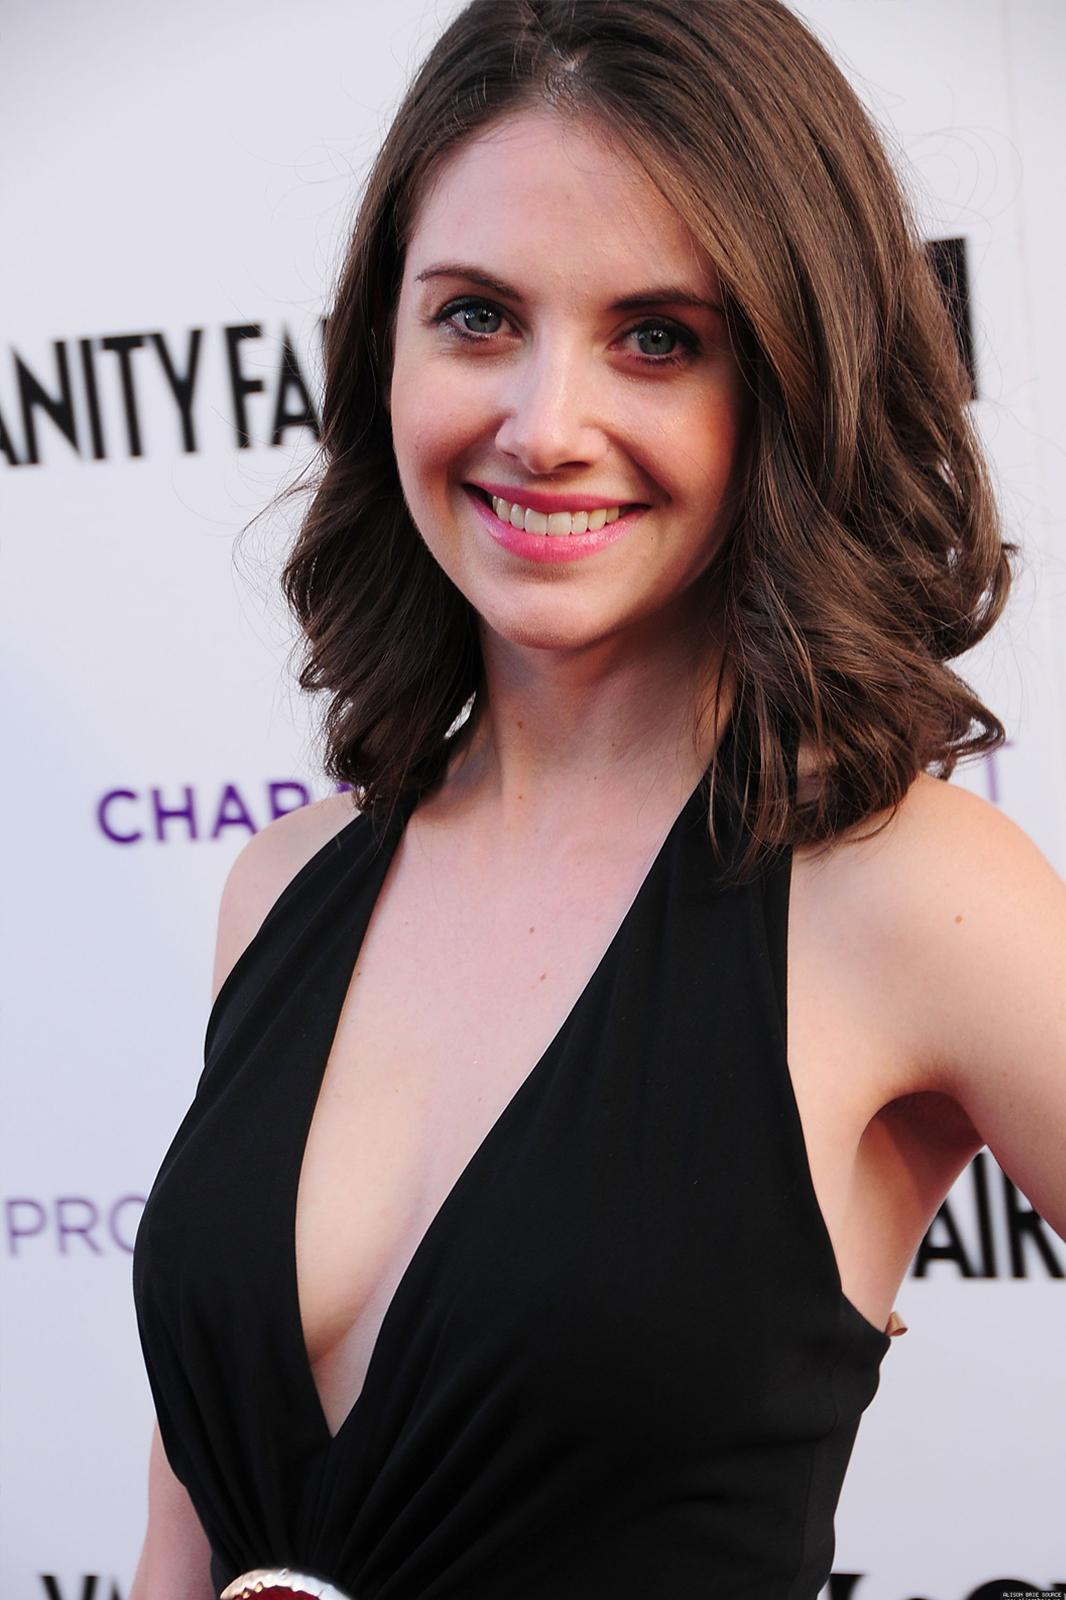 Biography of Alison Brie - Dave Franco